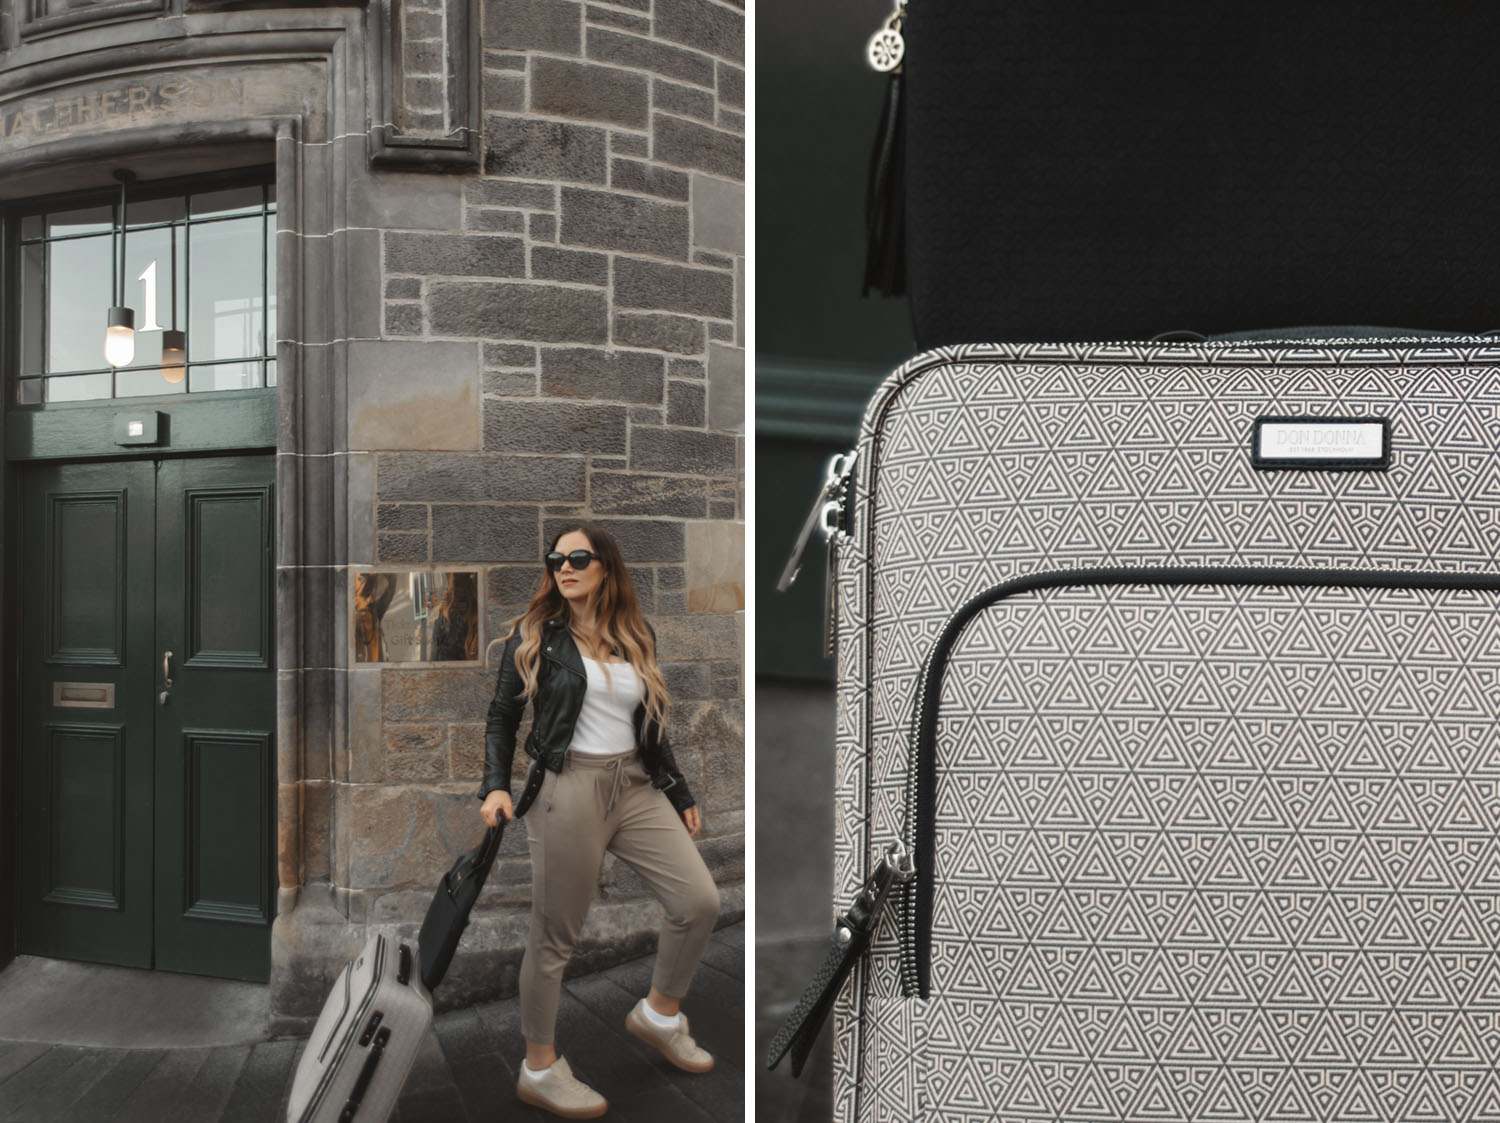 Travel in Style with cabin luggage